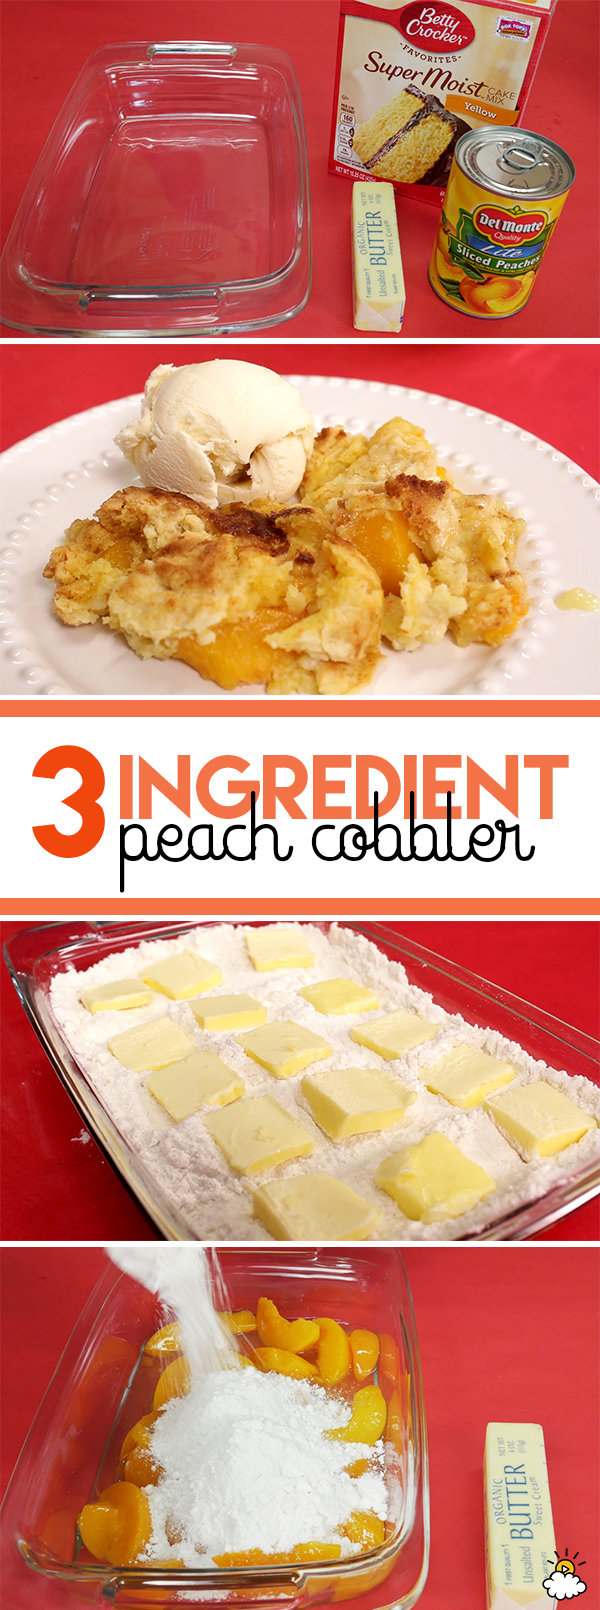 Learn How To Make Delicious 3Ingredient Peach Cobbler is part of Cake mix recipes - Everyone loves dessert, but not everyone loves the time and the energy that it takes to make it  Let's face it, a lot of desserts are timeconsuming and require a lot of fancy ingredients and and considerable preparation time  So when you're craving something sweet, but also something homemade, this peach cobbler recipe is one